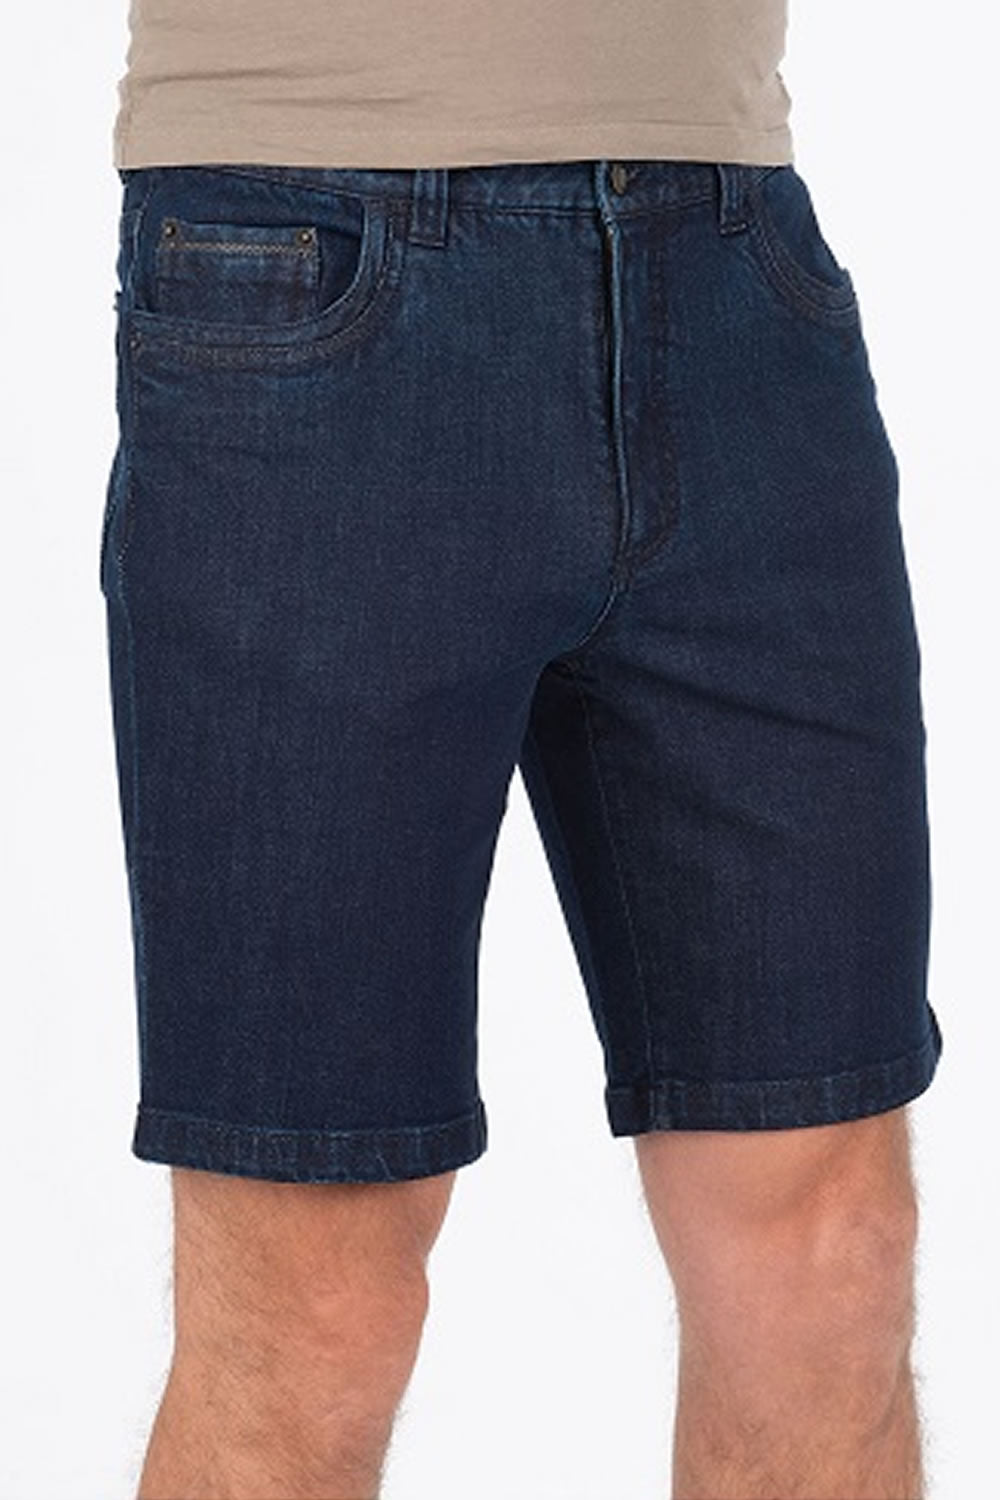 Bob Spears Denim Walk Short